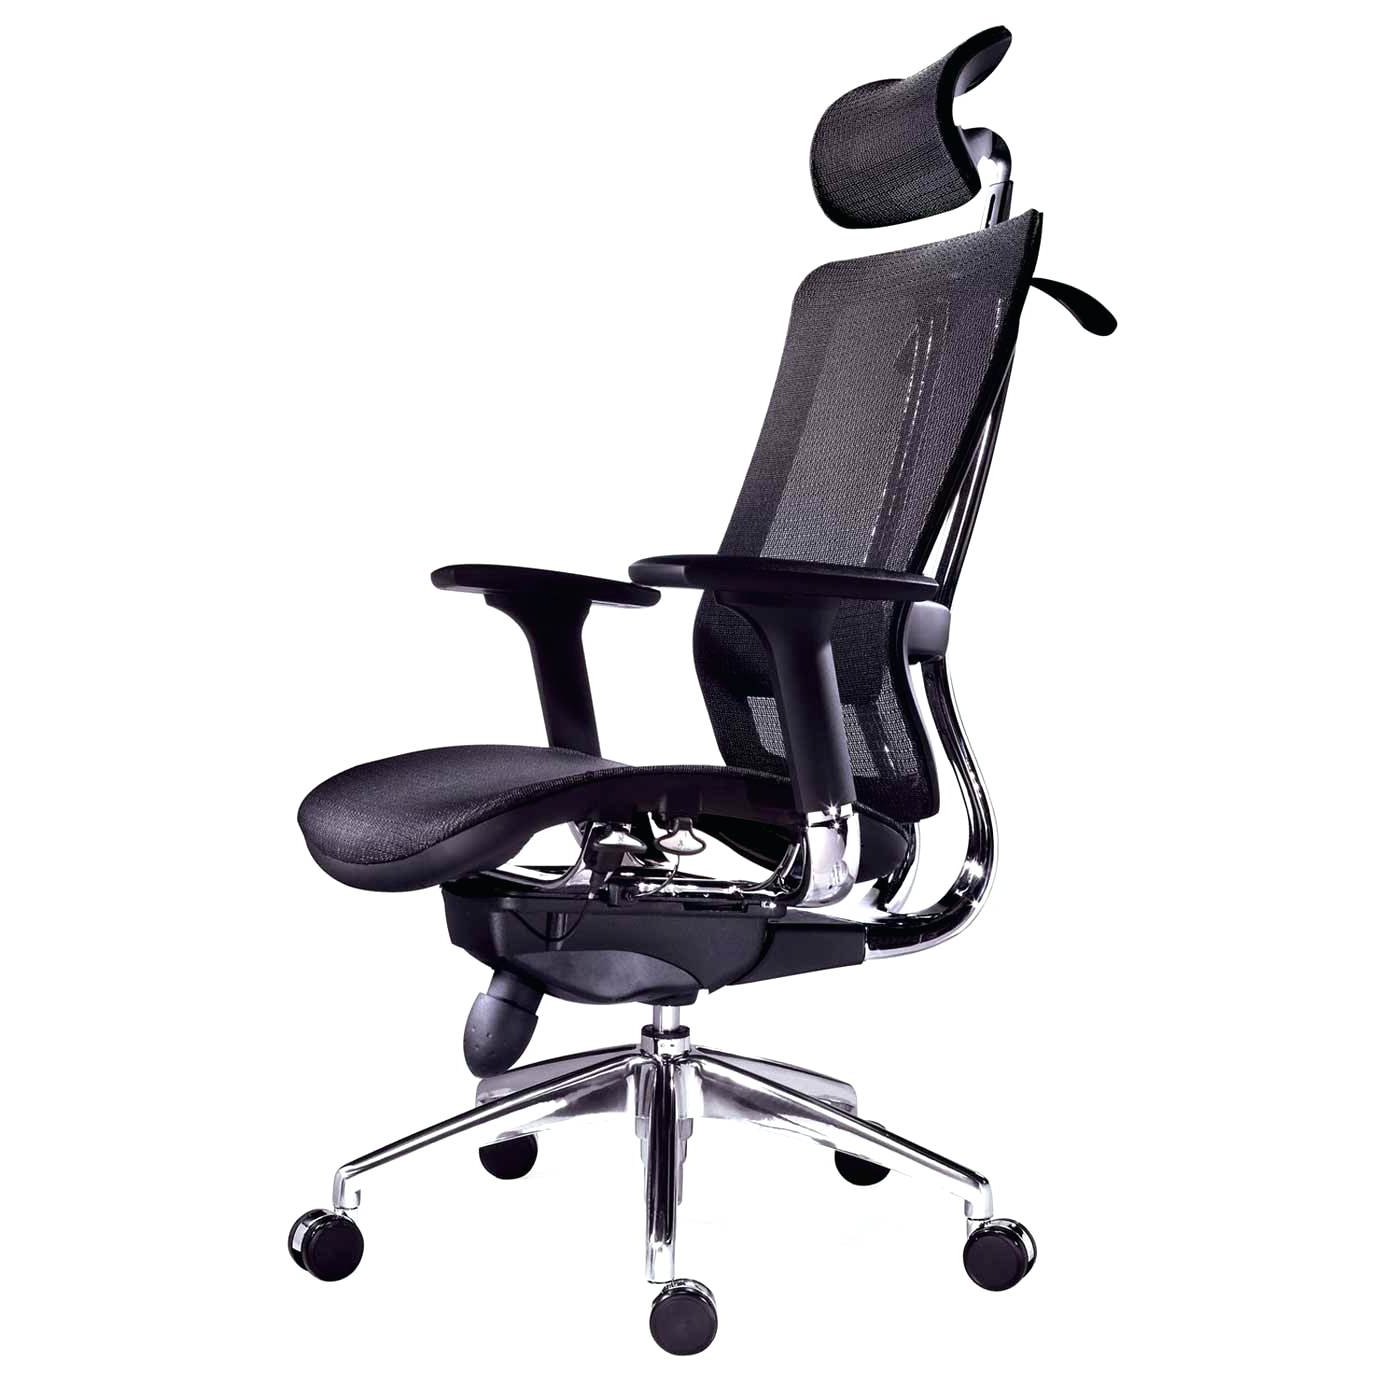 Amazing 5 Pick Miller Office Chair Best Mesh Office Chair With Most Recent Petite Executive Office Chairs (View 3 of 20)